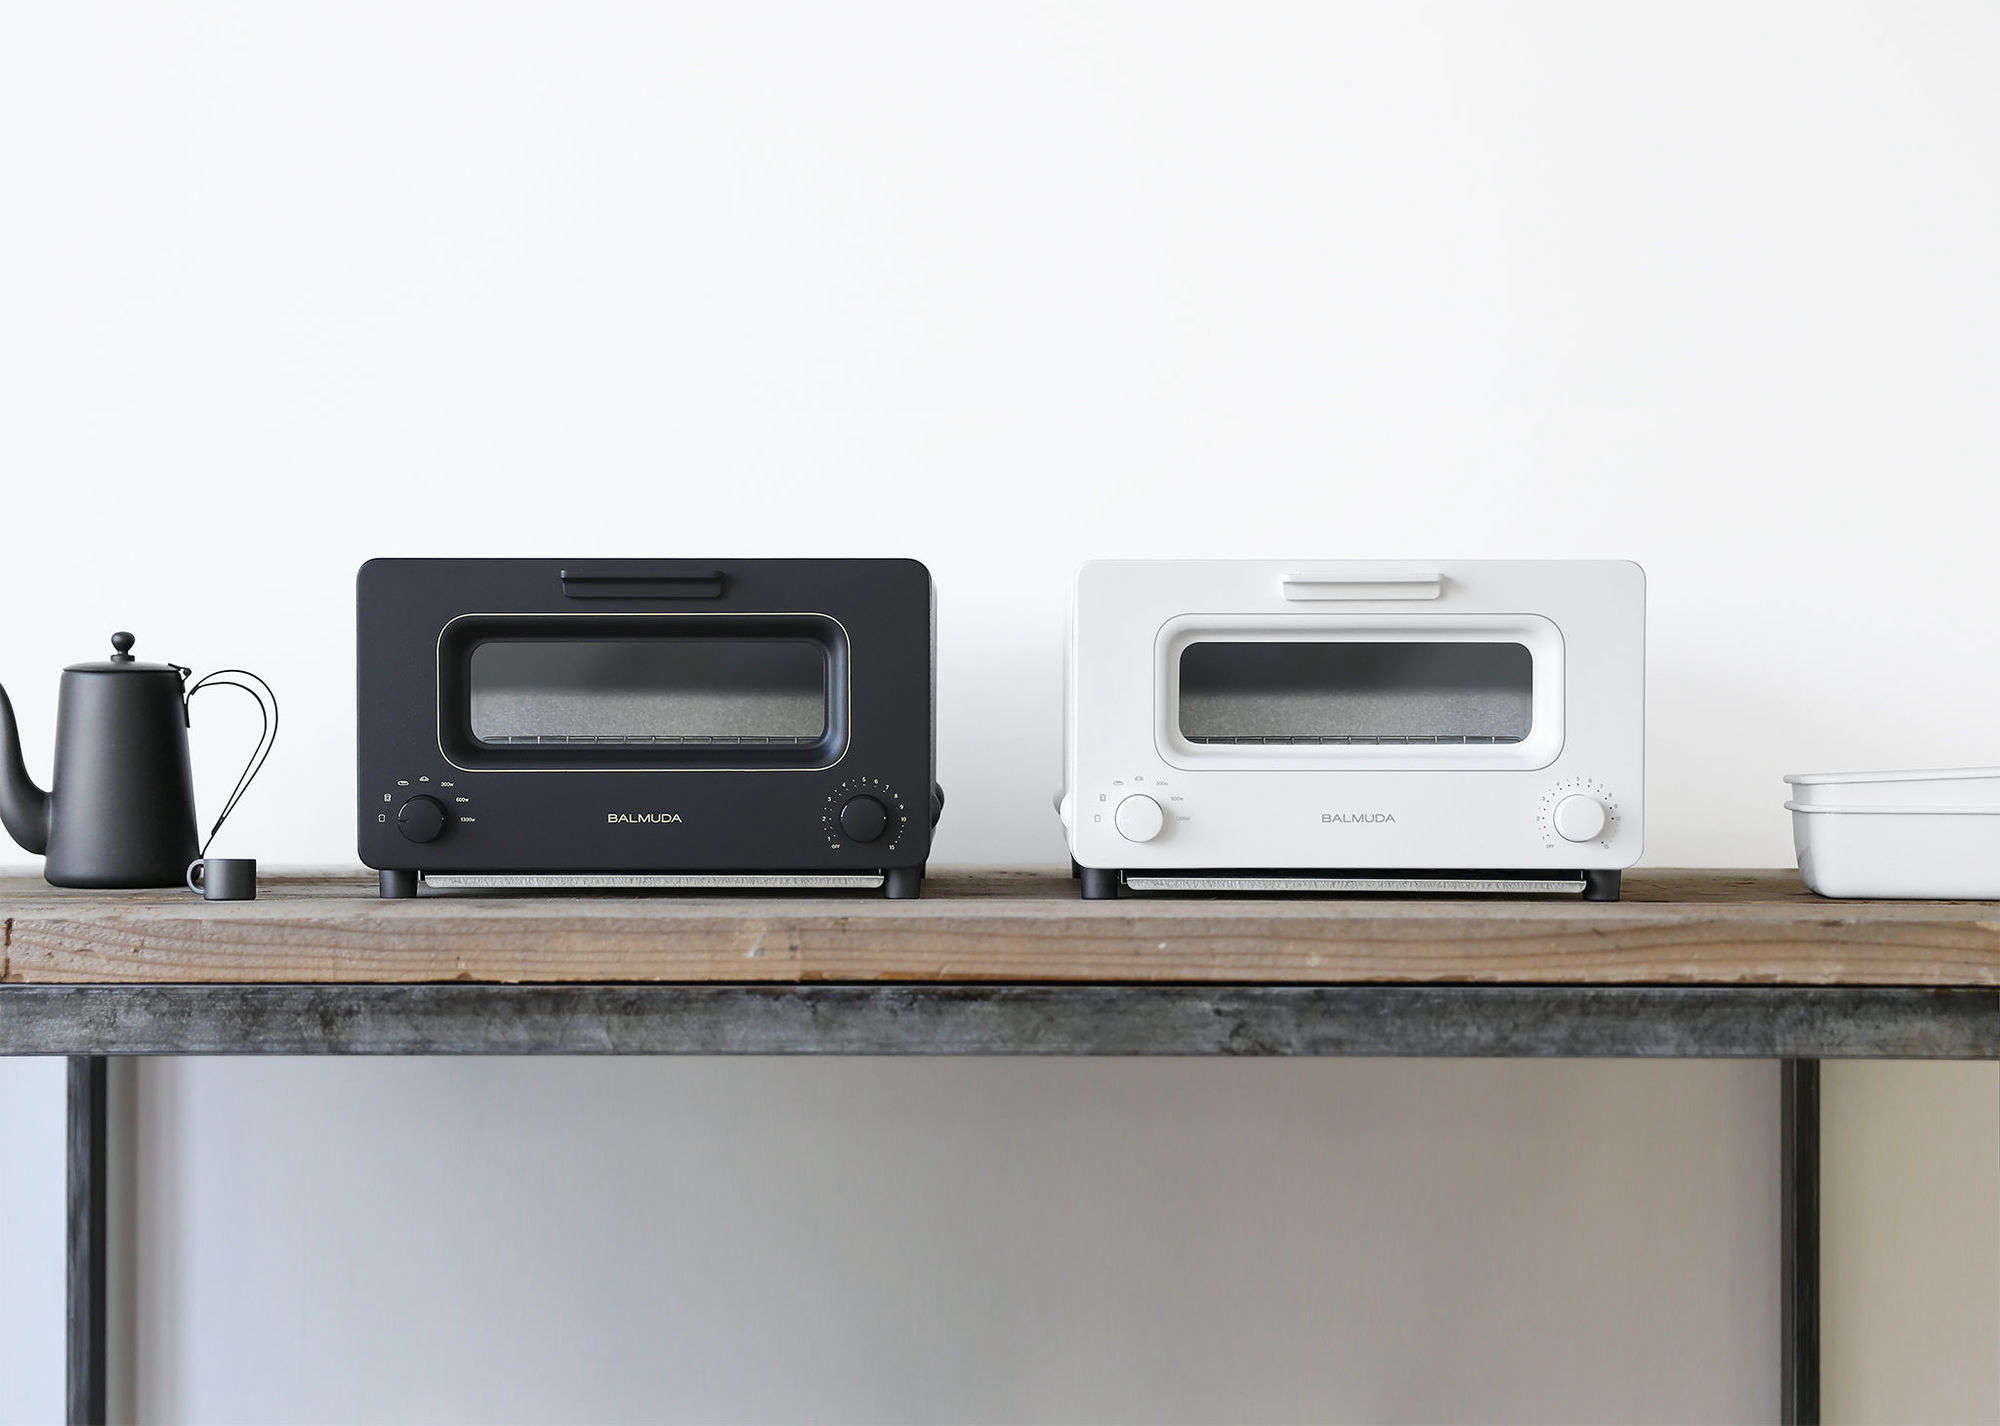 the newbalmuda steam oven toaster from japan uses has a steam feature for toa 12